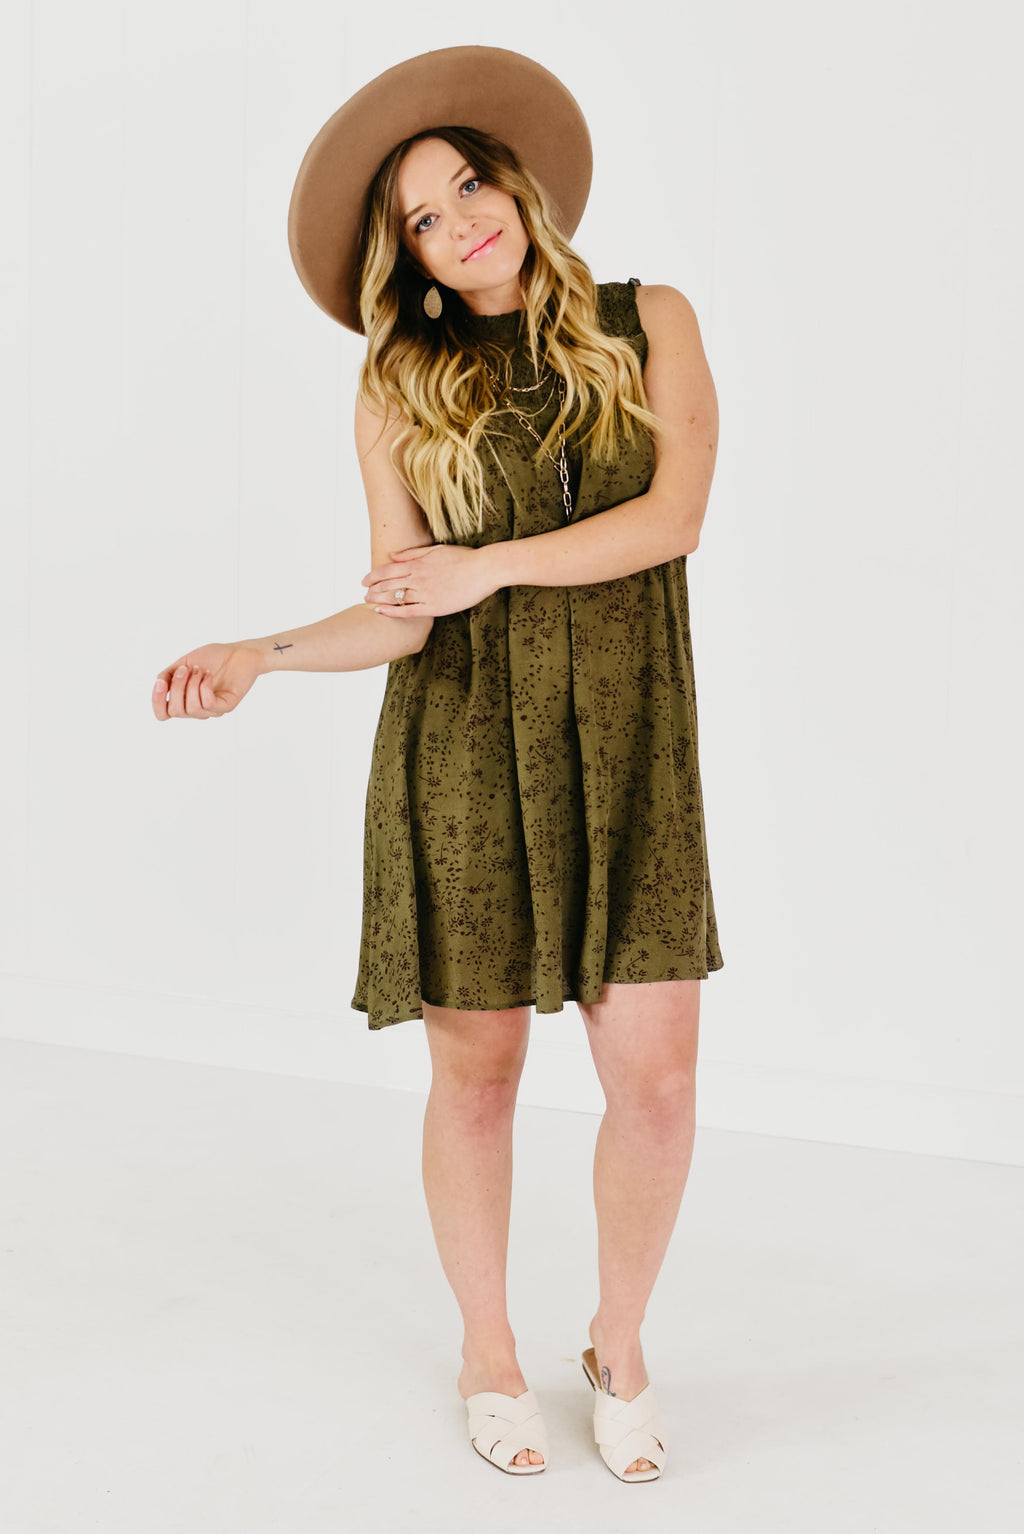 (MOD Exclusive) The Evy Floral Smock Dress - Olive